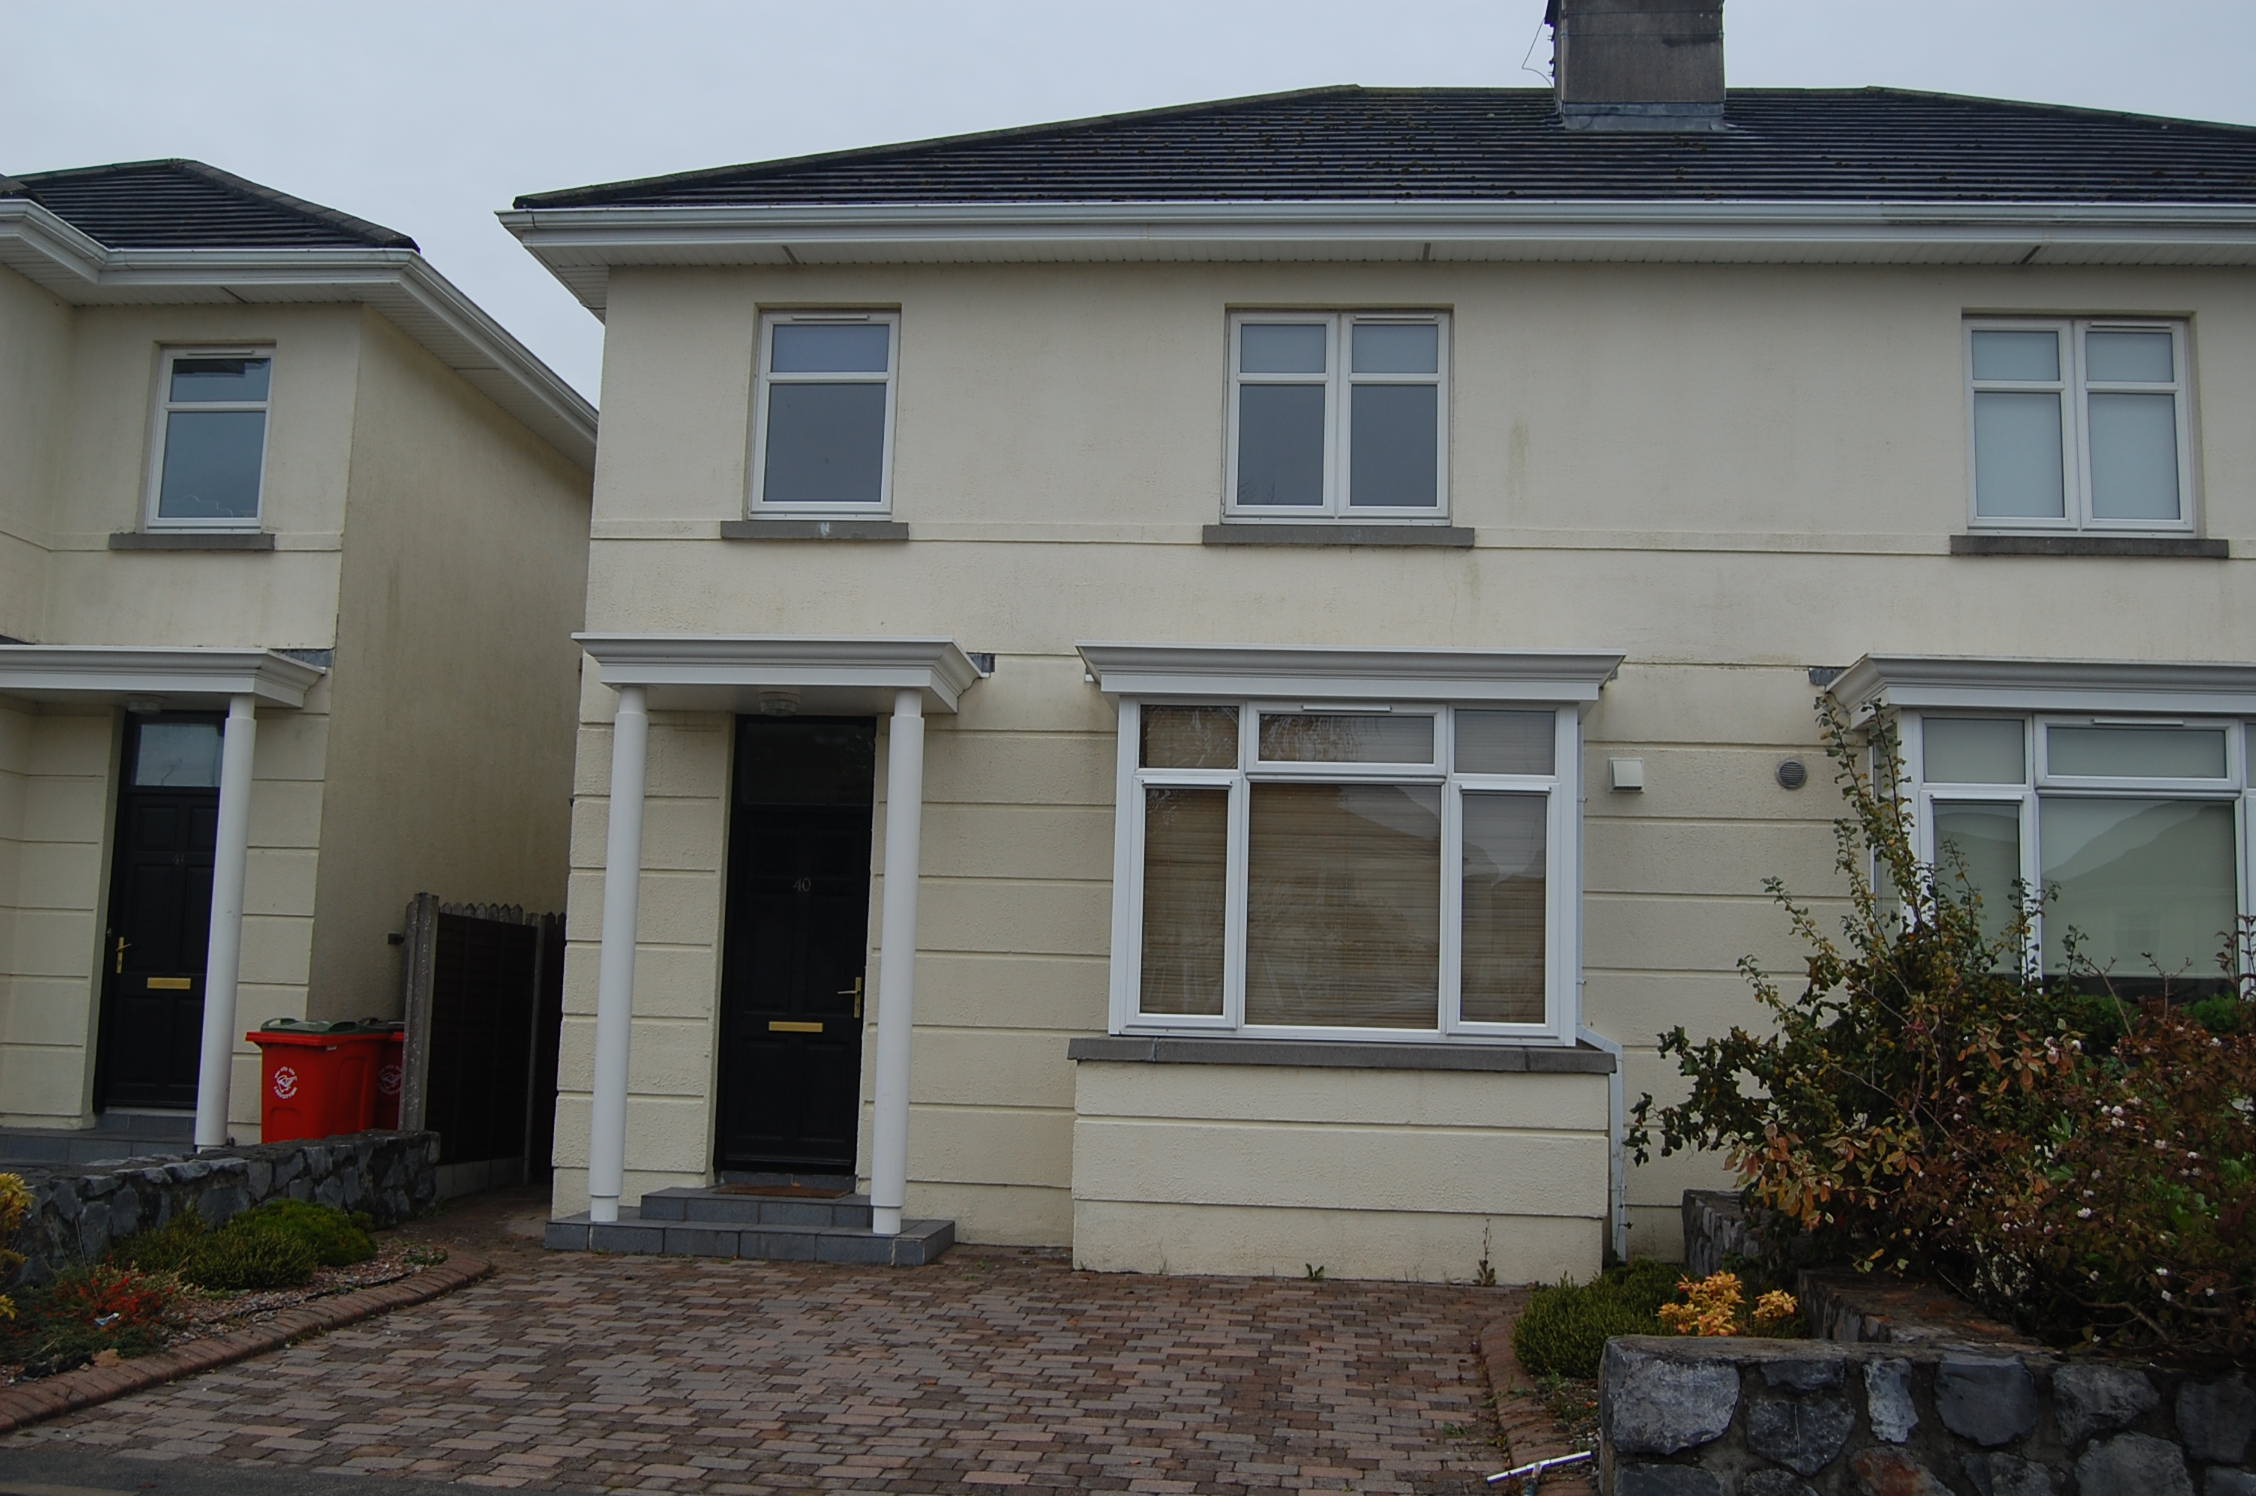 40 The Grove, Oranhill, Oranmore, Co. Galway – H91F5K6